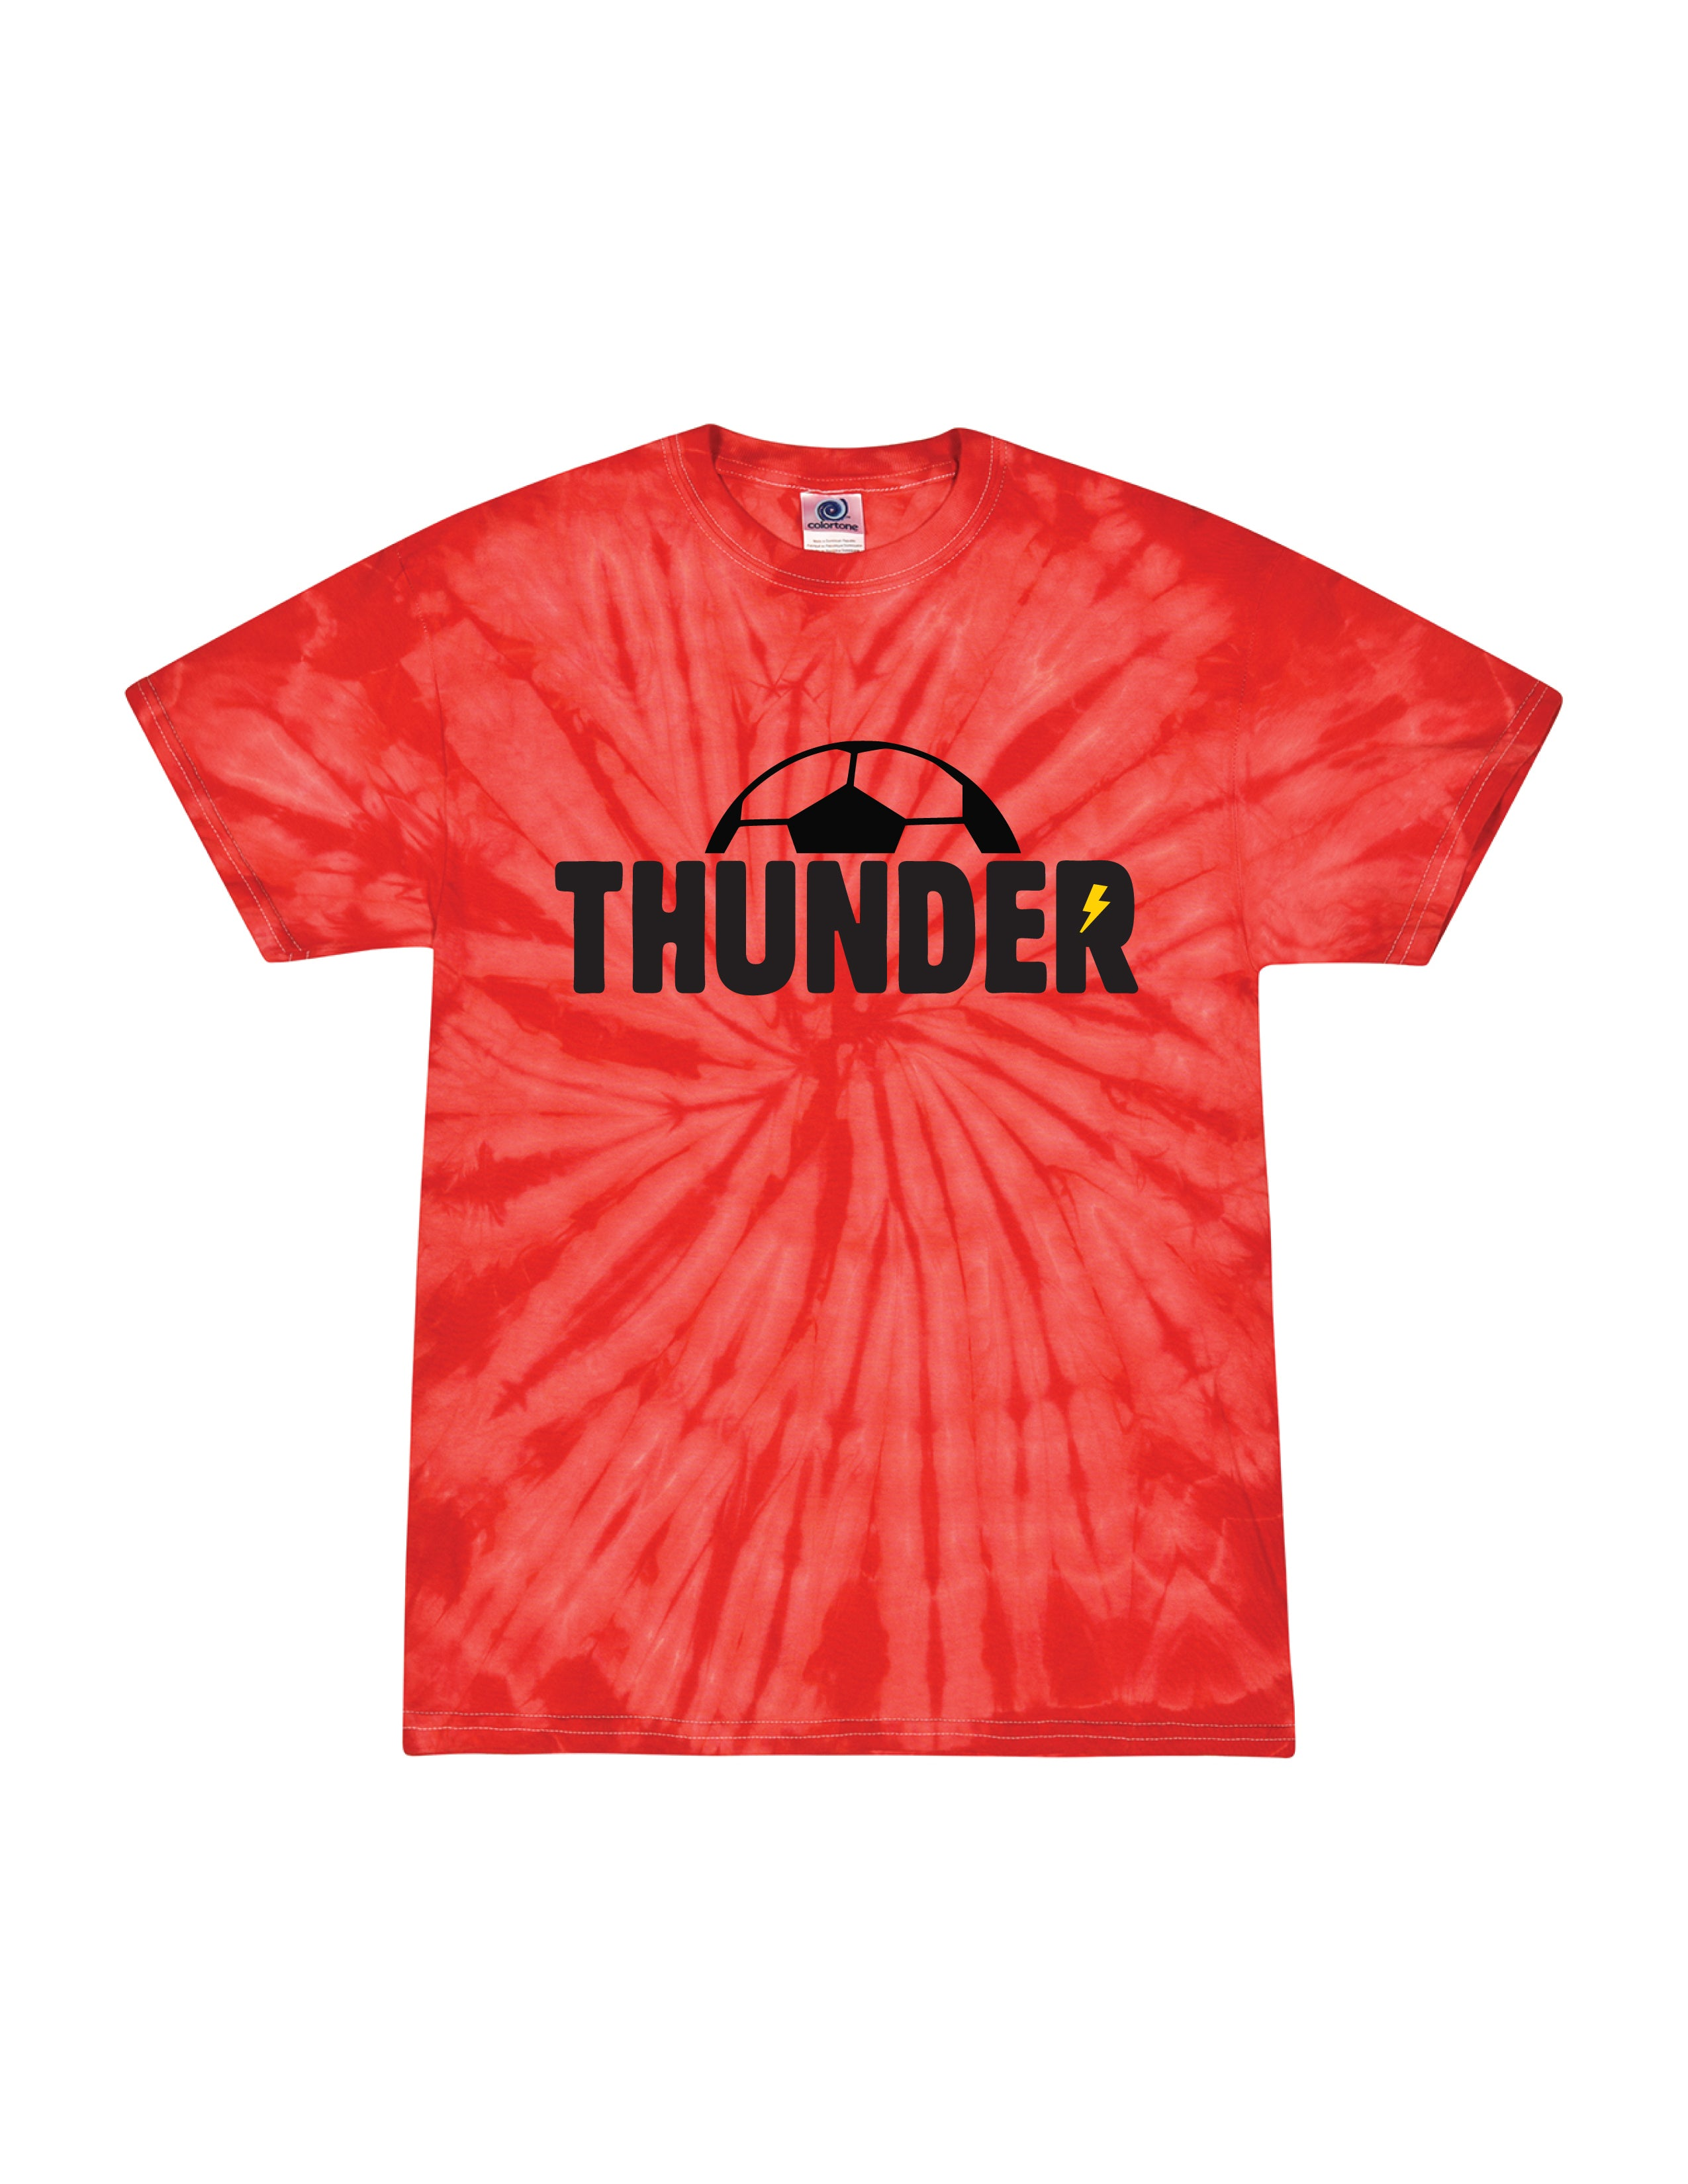 Boys Thunder Red Tie-Dye T-Shirt- Adult Unisex and Youth